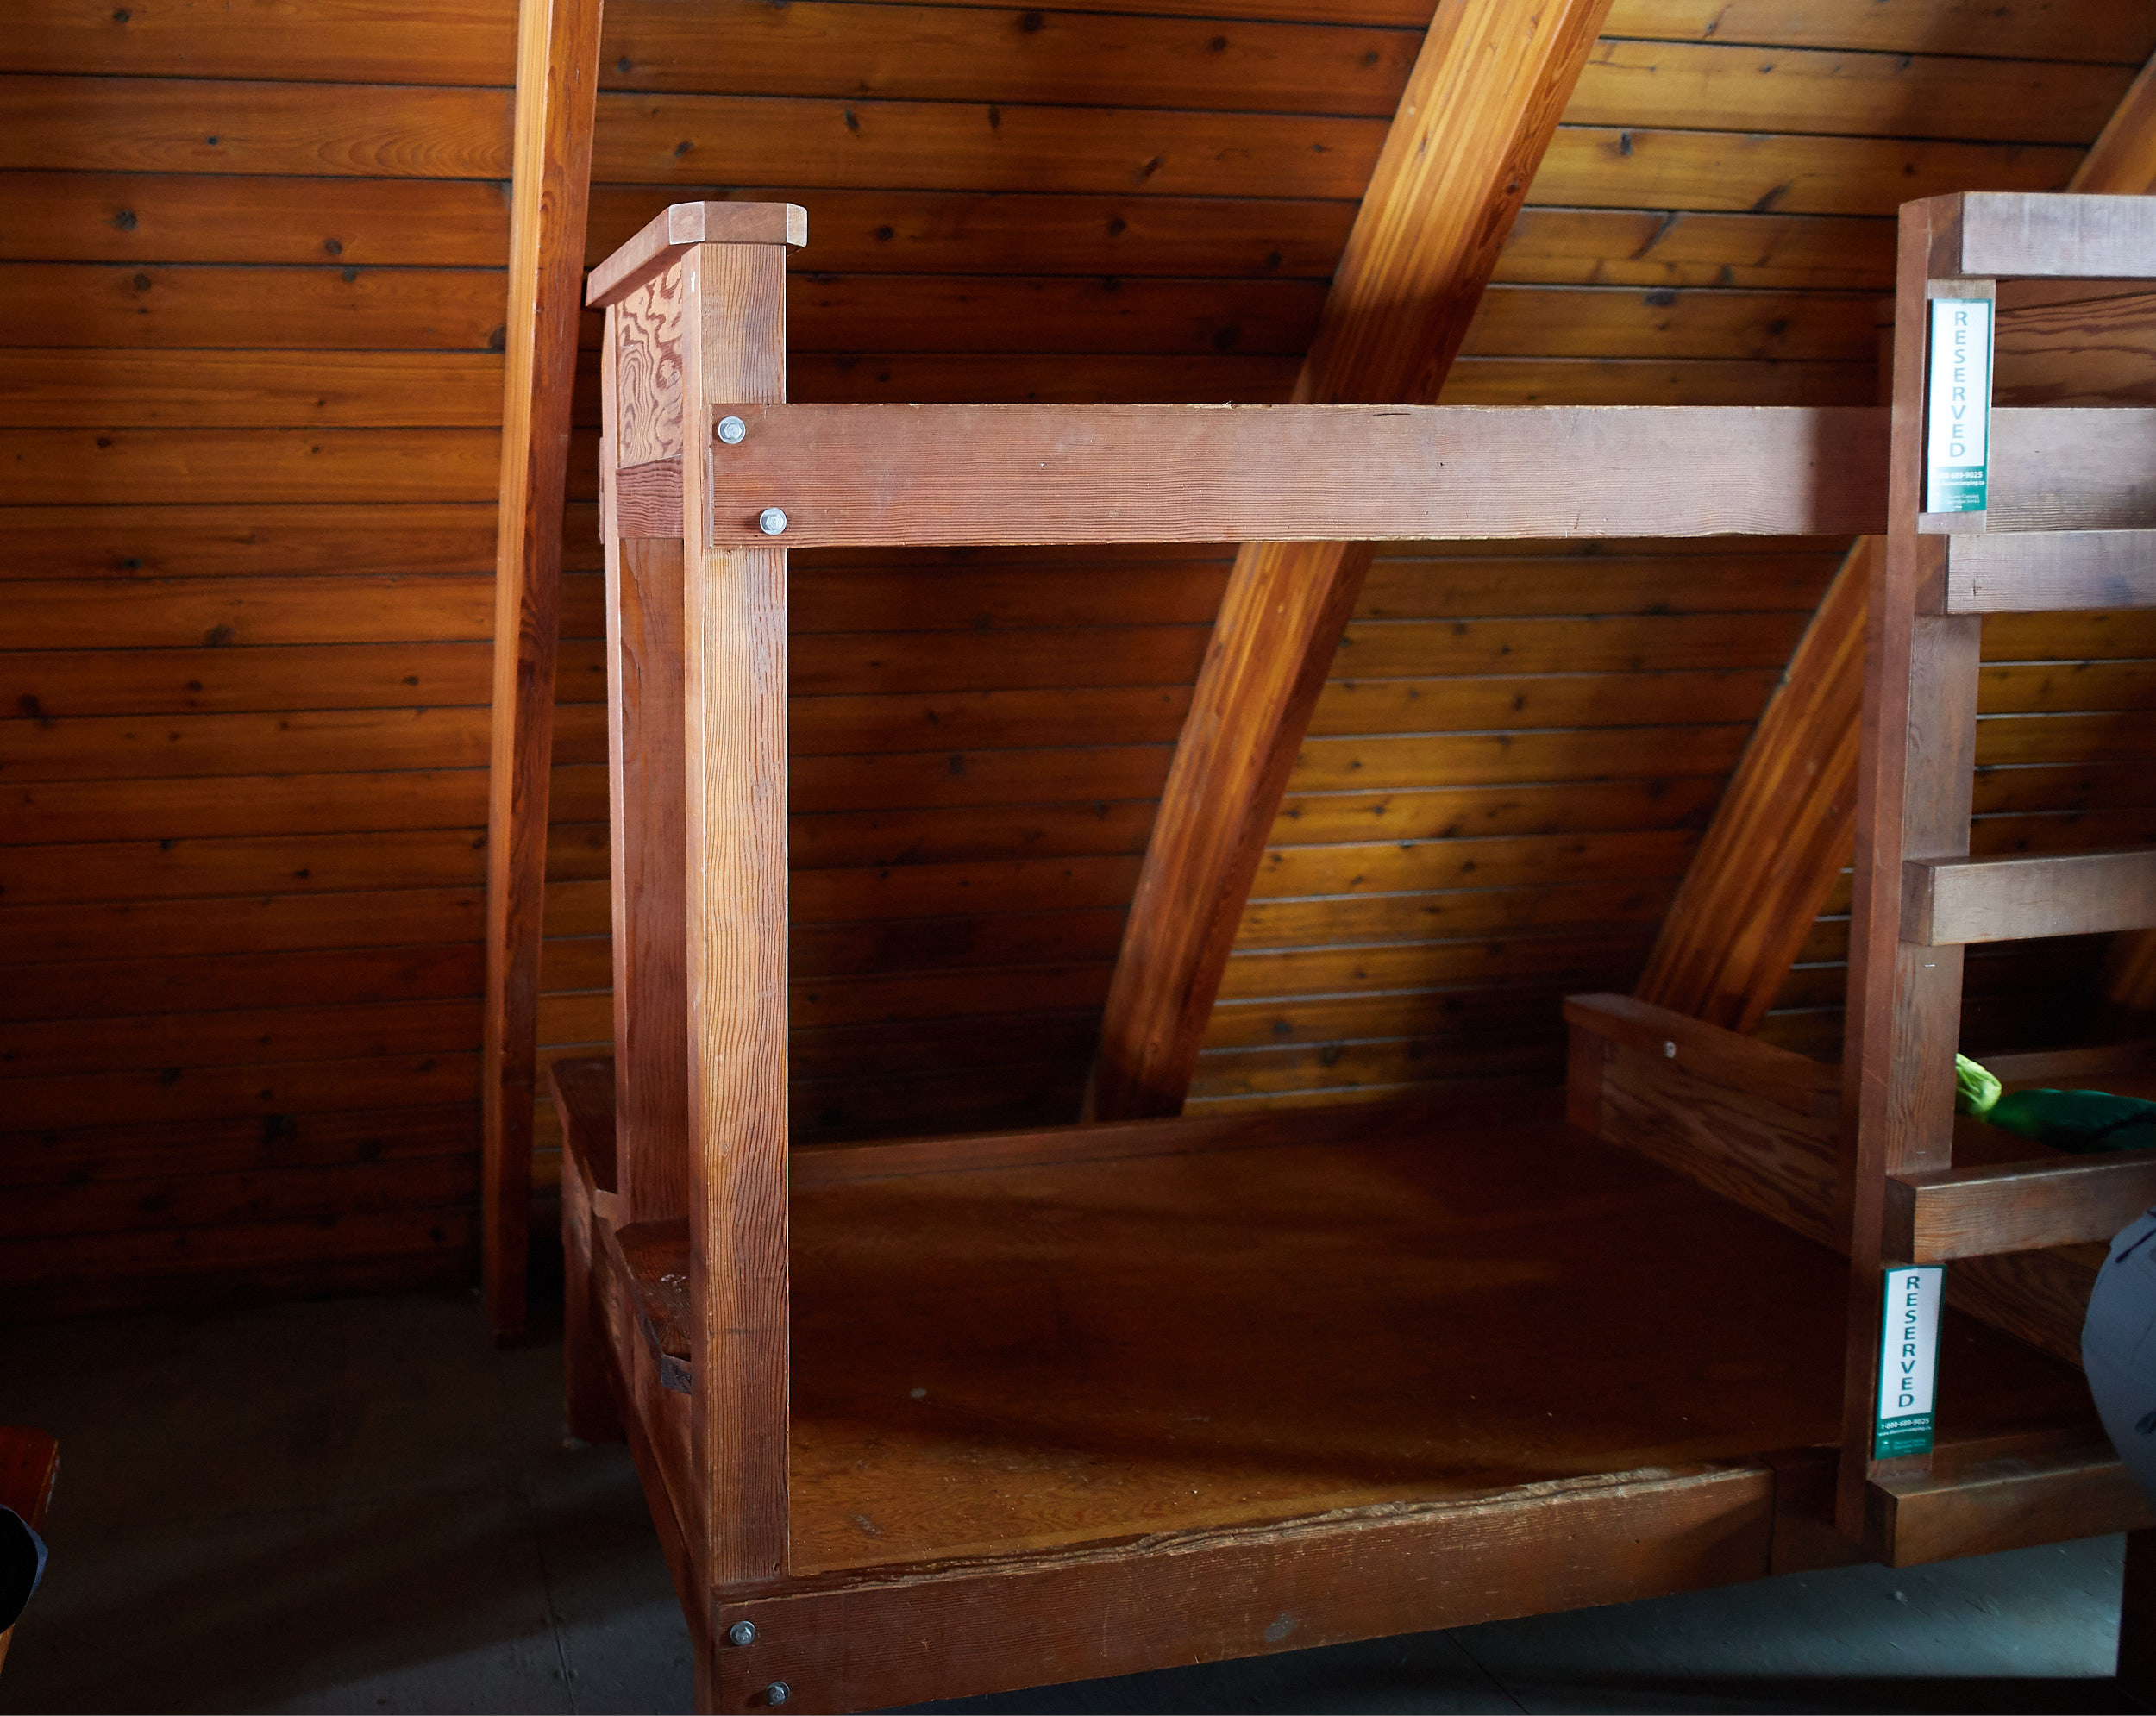 The hut is lined with bunk beds, with the bottoms being doubles and the tops being singles.